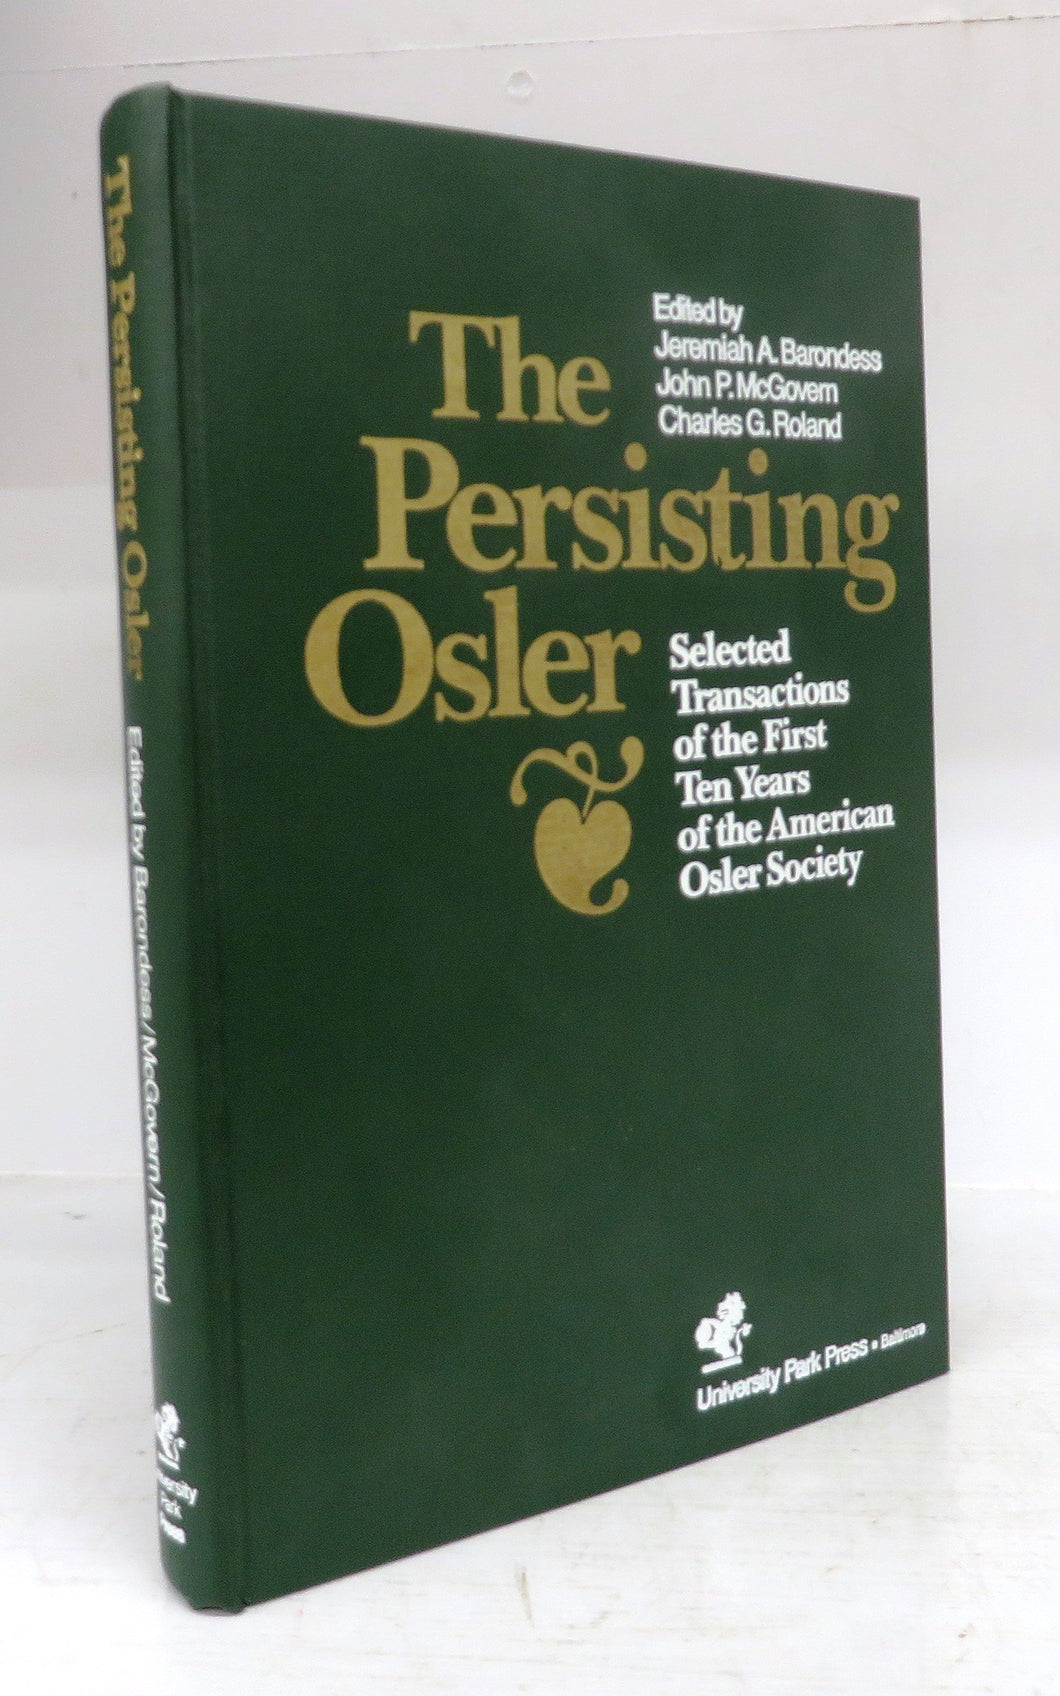 The Persisting Osler: Selected Transactions of the First Ten Years of the American Osler Society